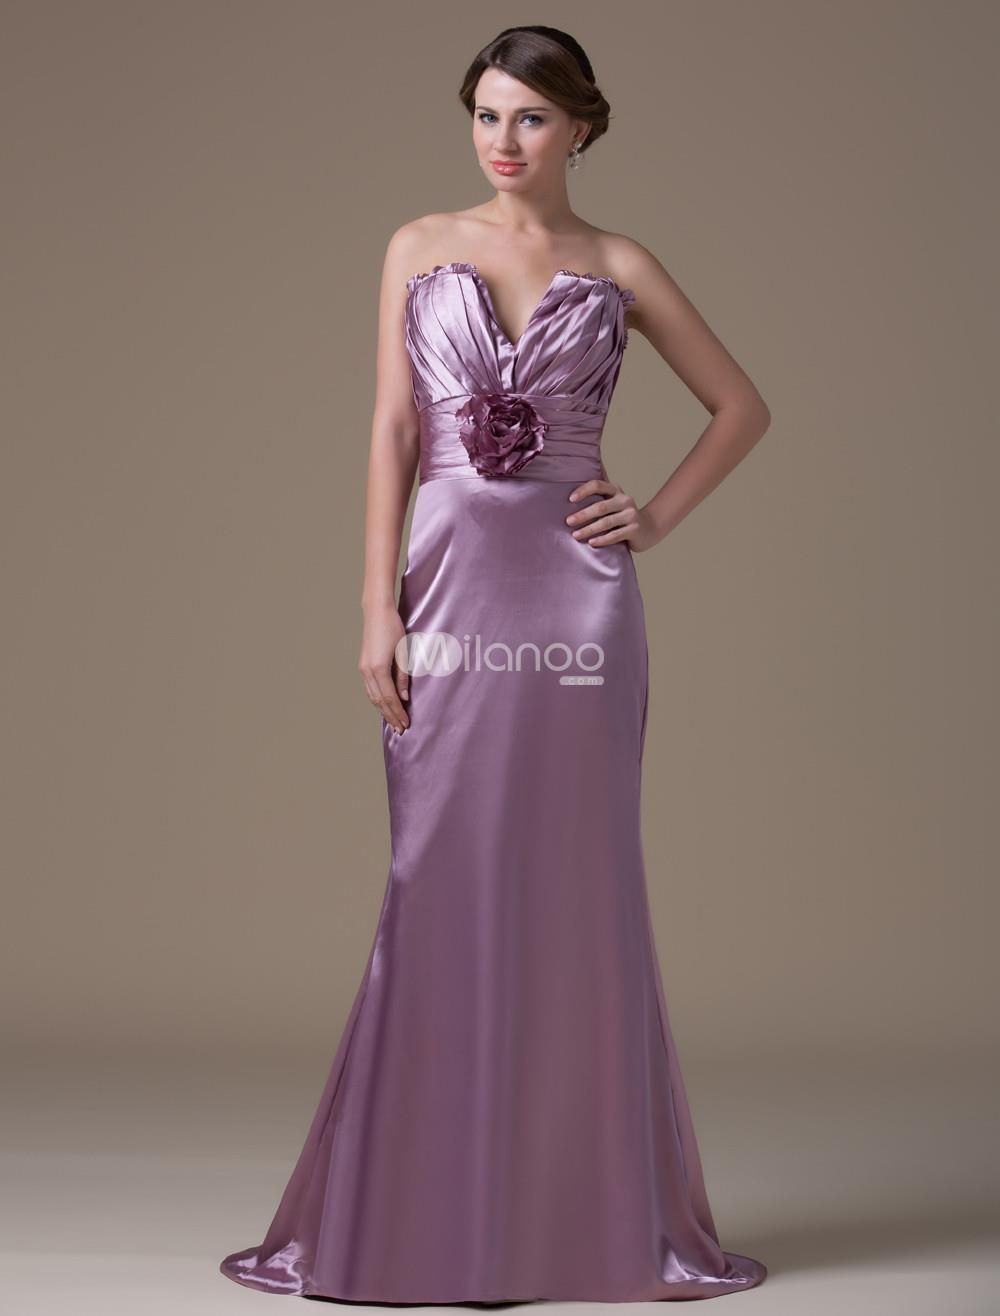 Light purple fashion aline spandex satin maternity bridesmaid dress